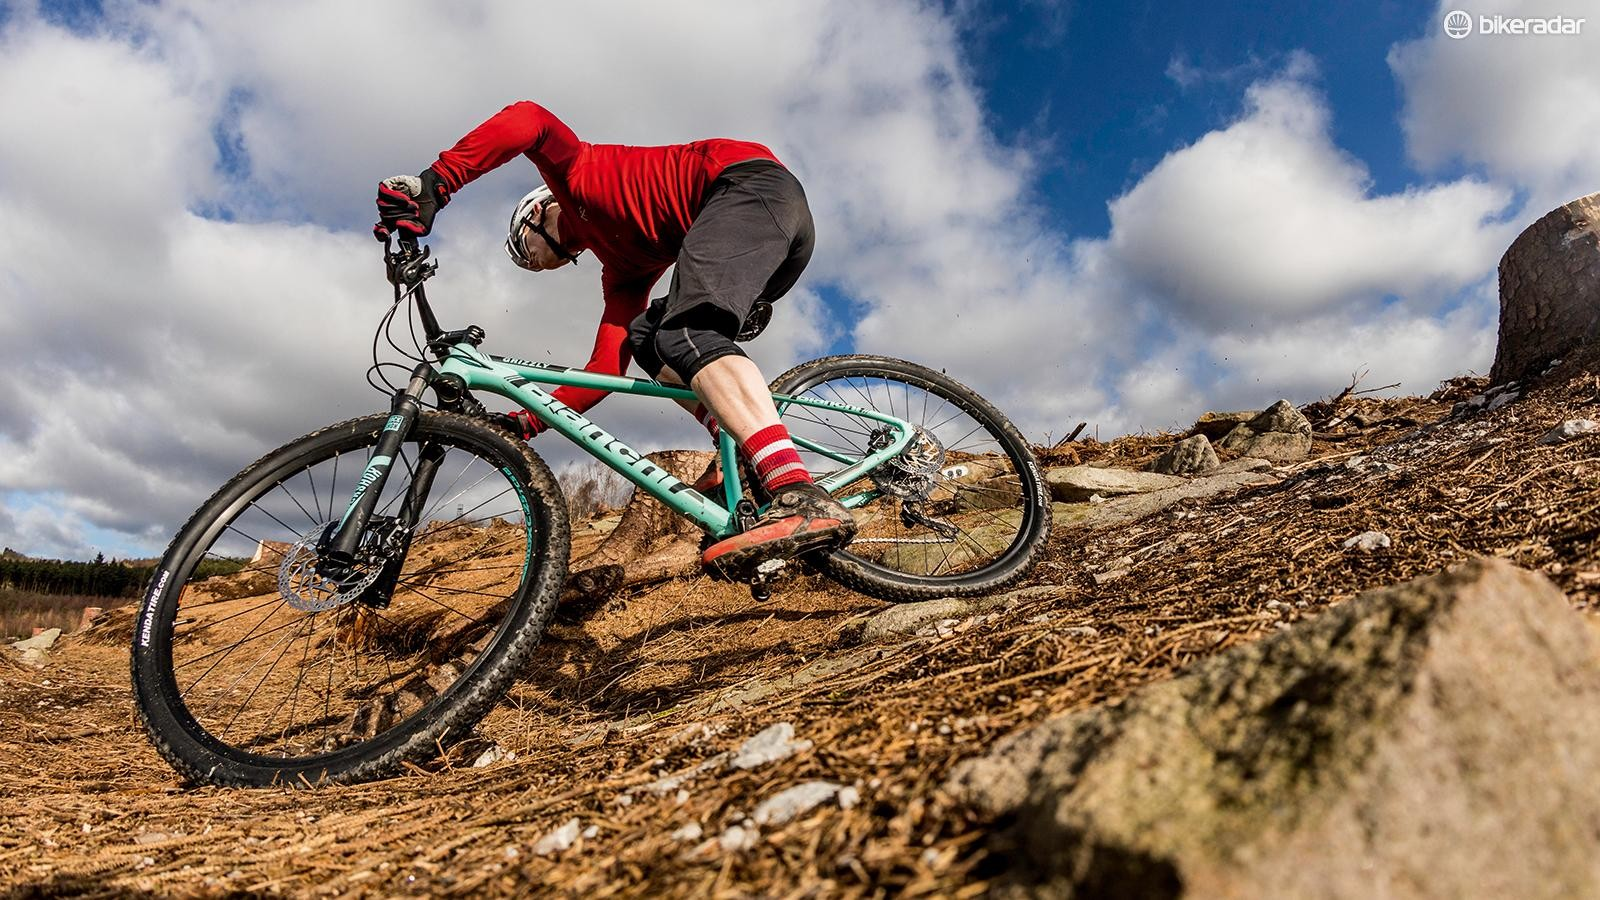 Bianchi is better known for its road bikes, but this celeste-green 29er is a decent XC option